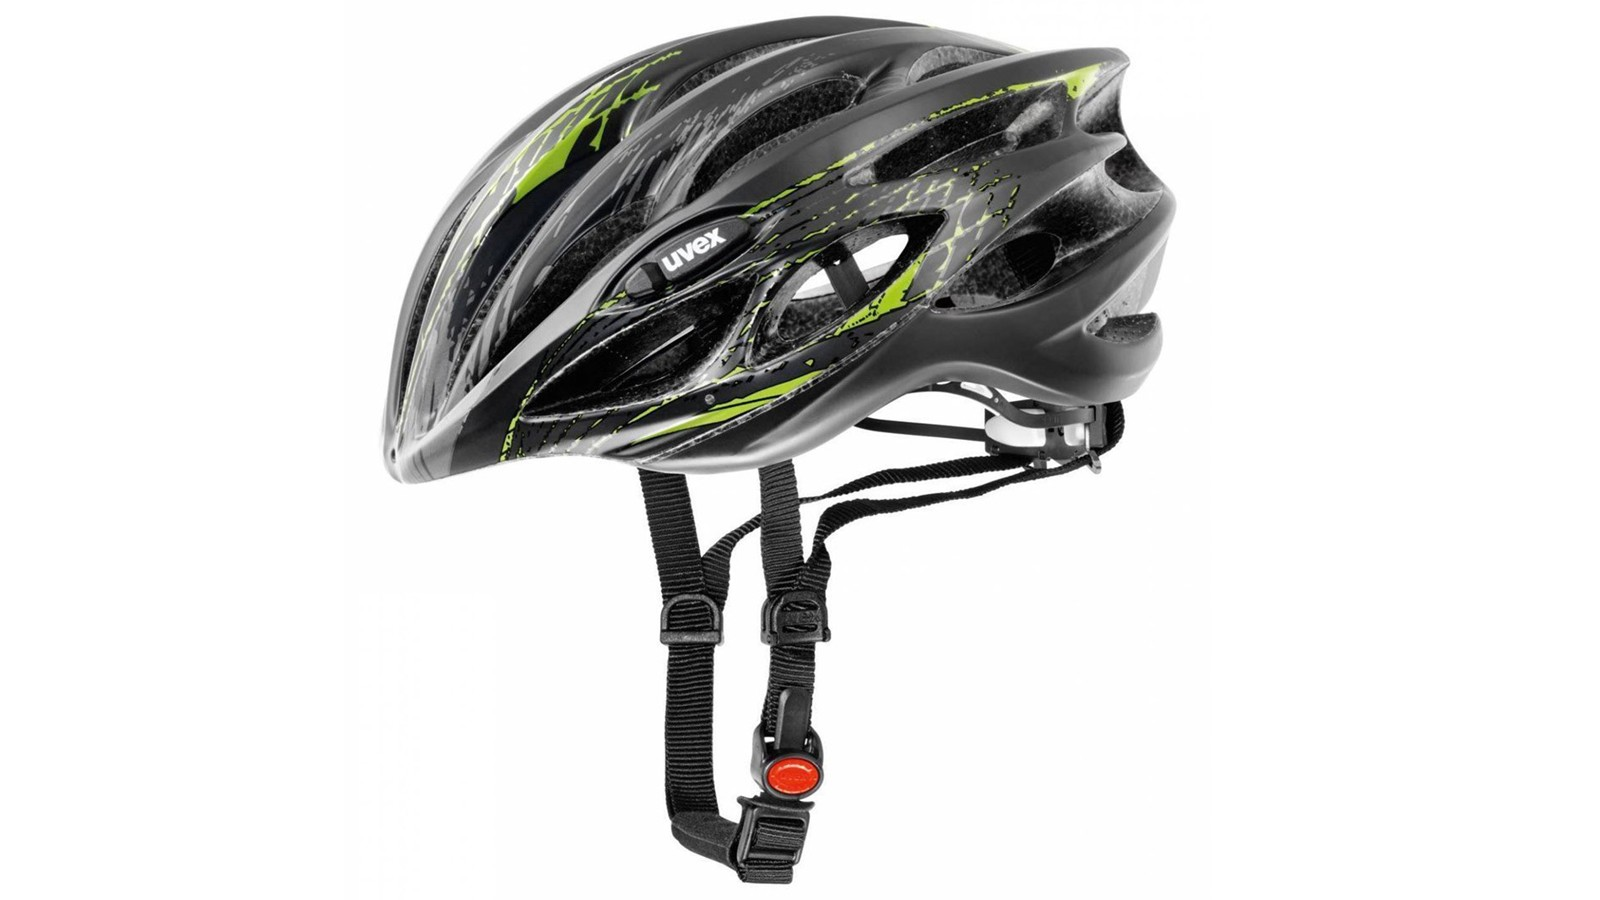 The Uvex FP1 is a great entry level helmet